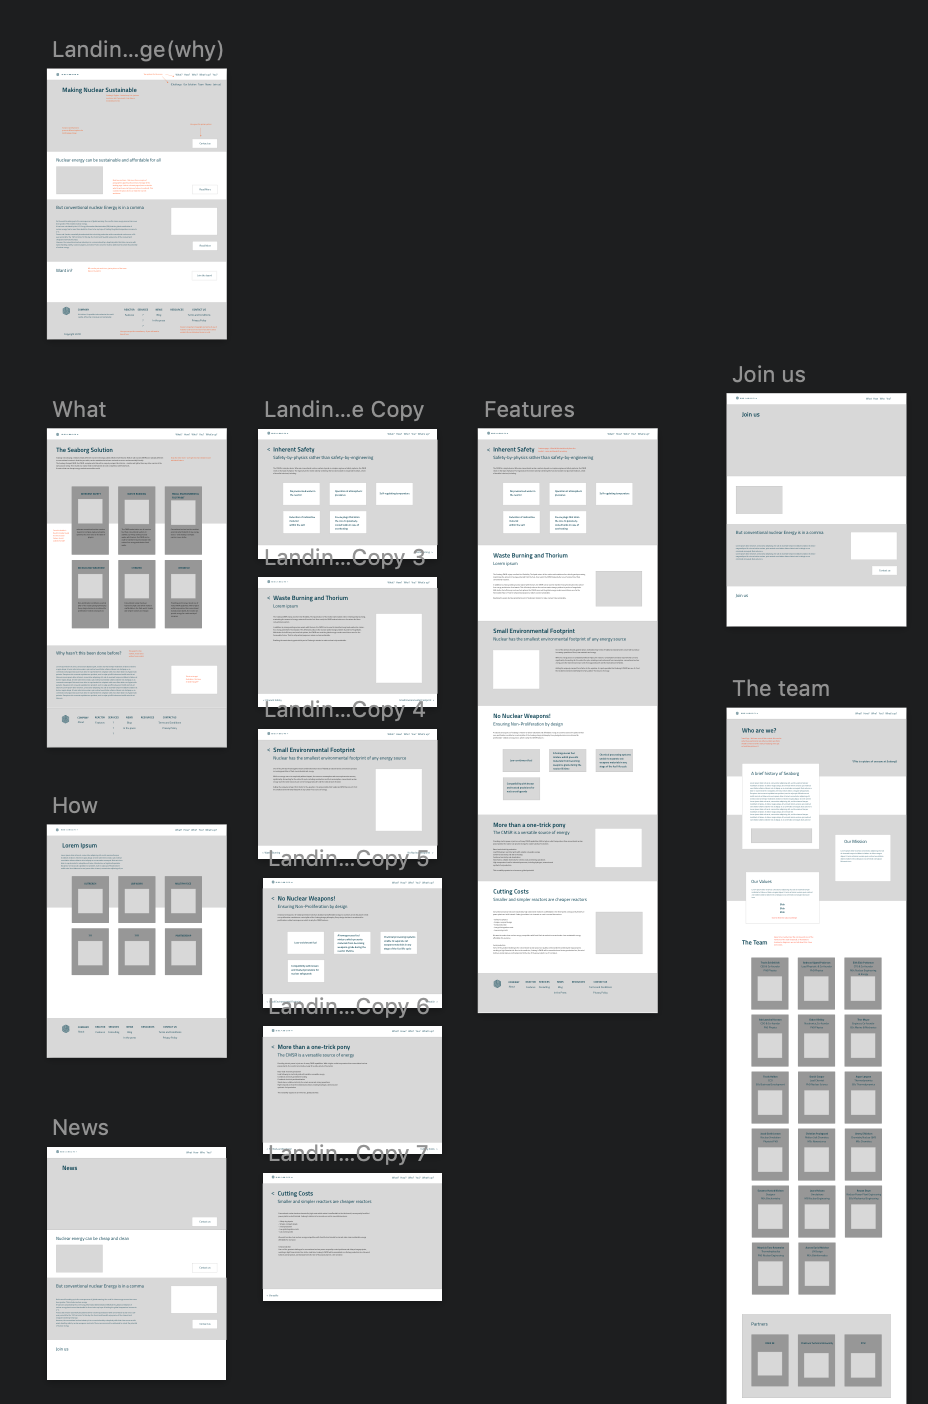 Wireframes for Information Architecture